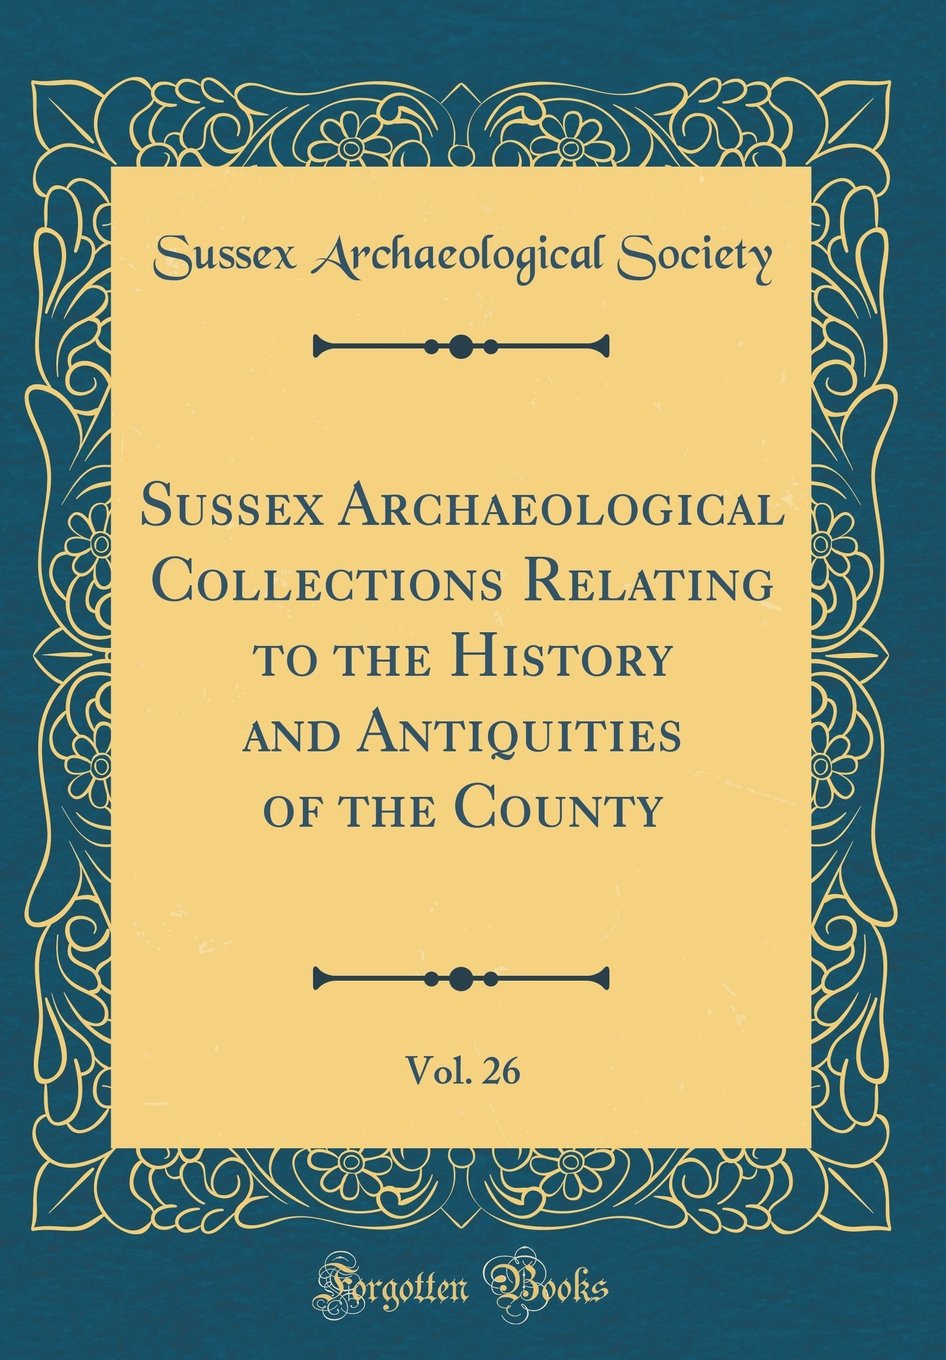 Download Sussex Archaeological Collections Relating to the History and Antiquities of the County, Vol. 26 (Classic Reprint) pdf epub